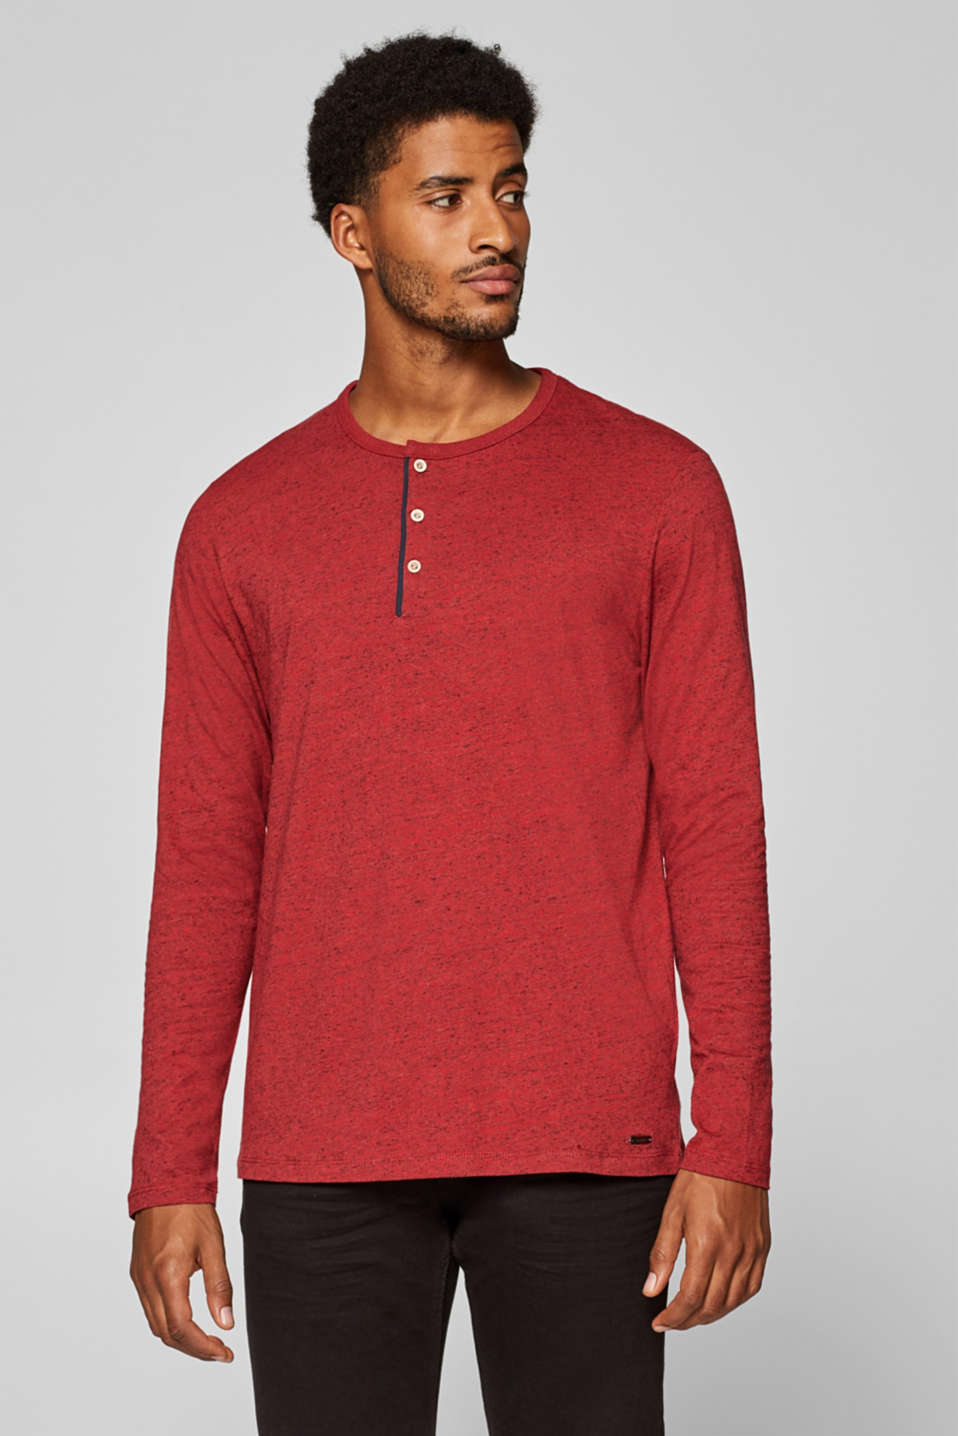 Esprit - Henley long sleeve top in jersey, 100% cotton